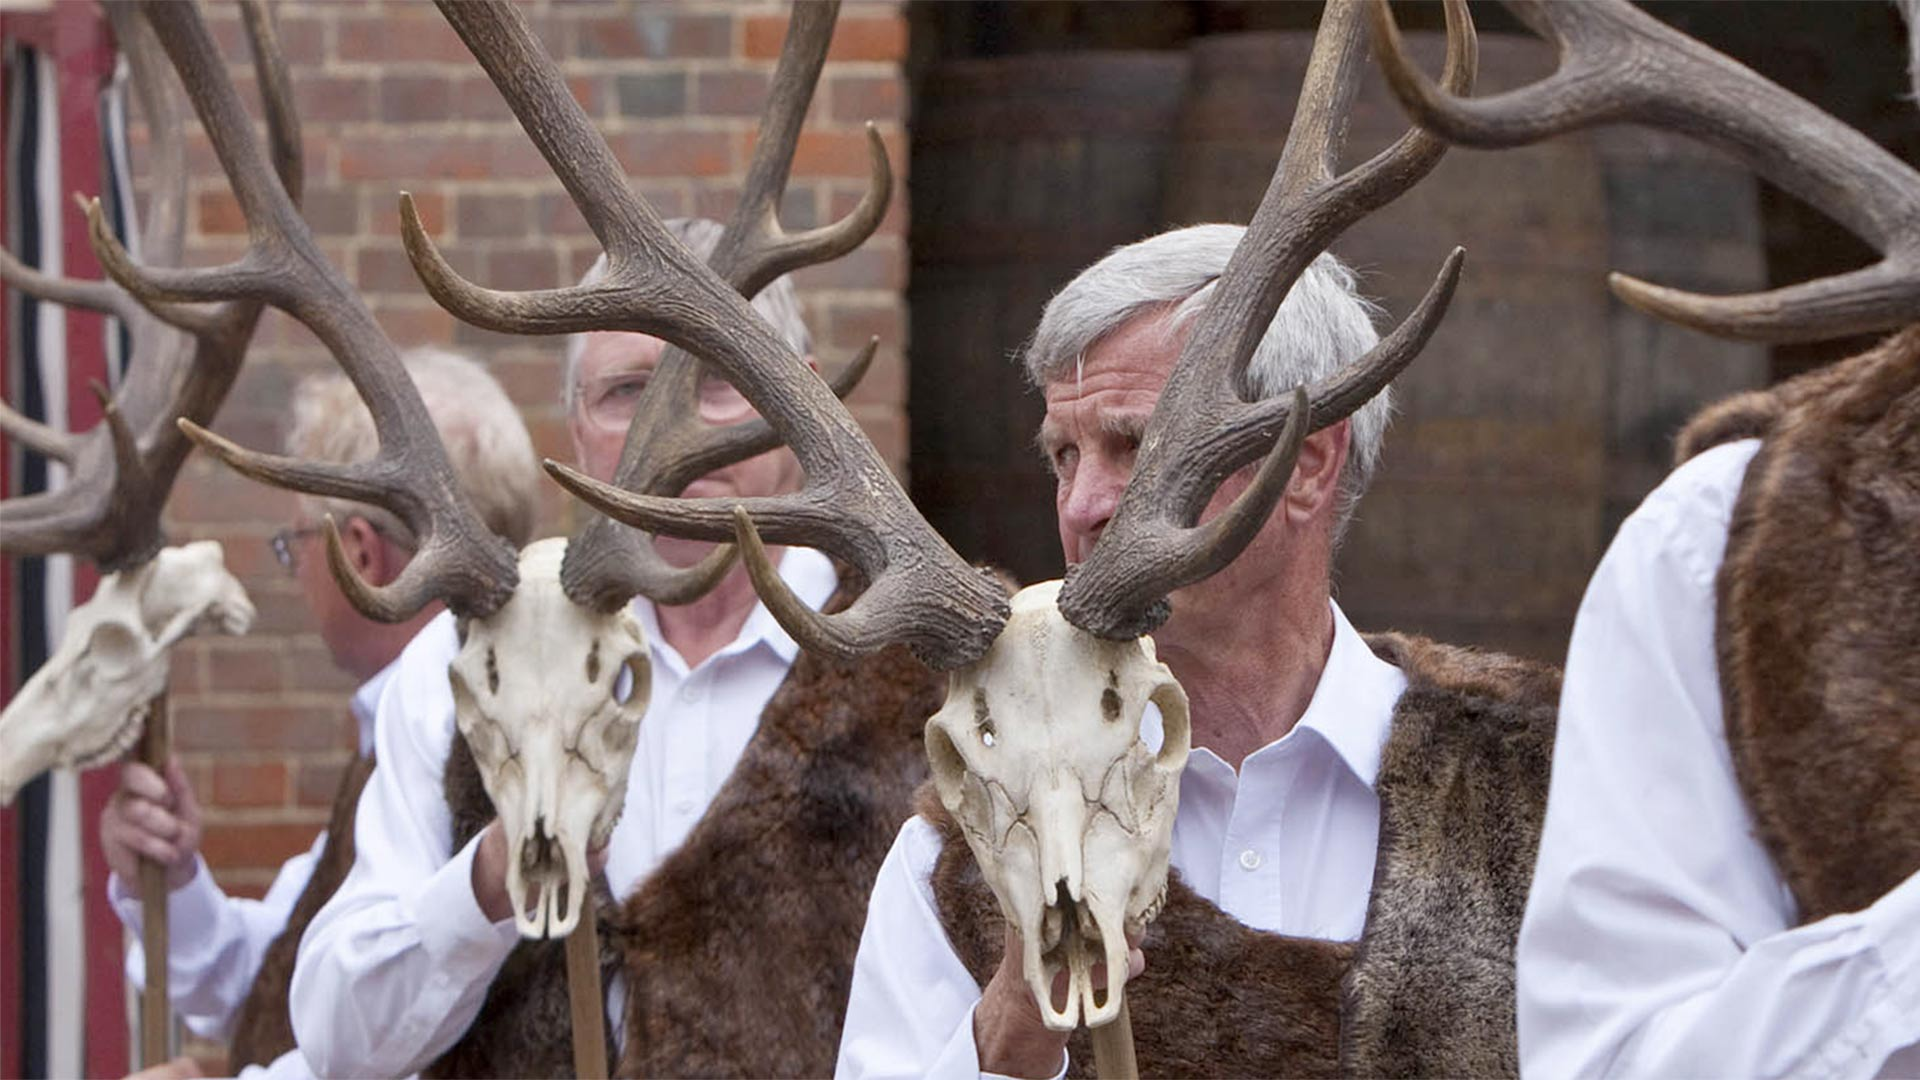 Midsomer Murders Season 14: The Night of the Stag